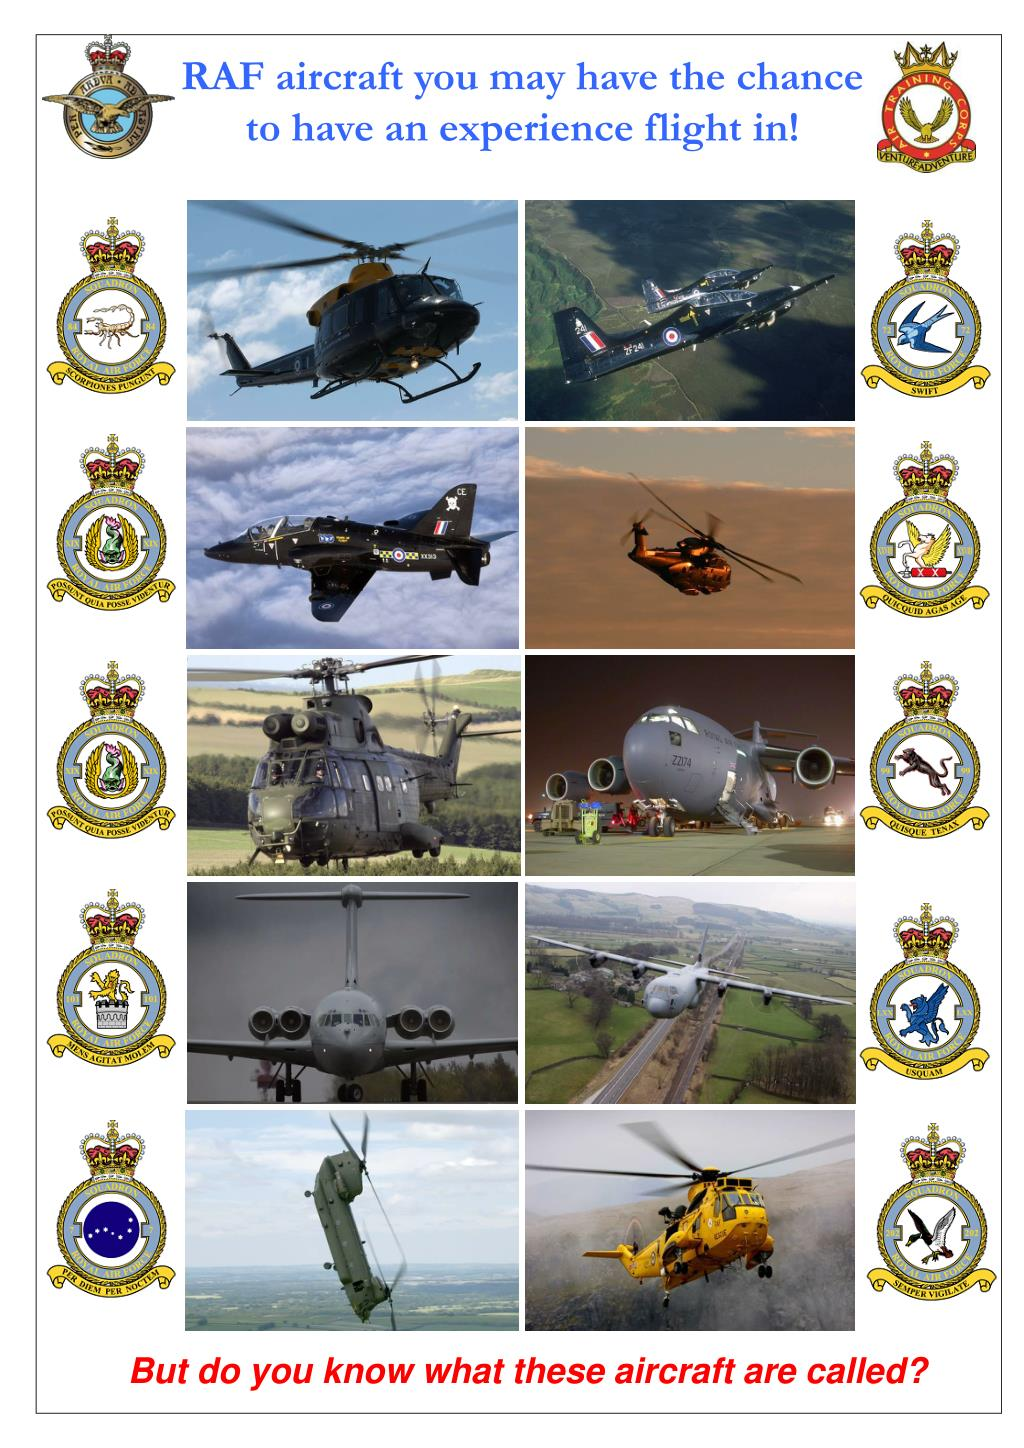 RAF aircraft you may have the chance to have an experience flight in!